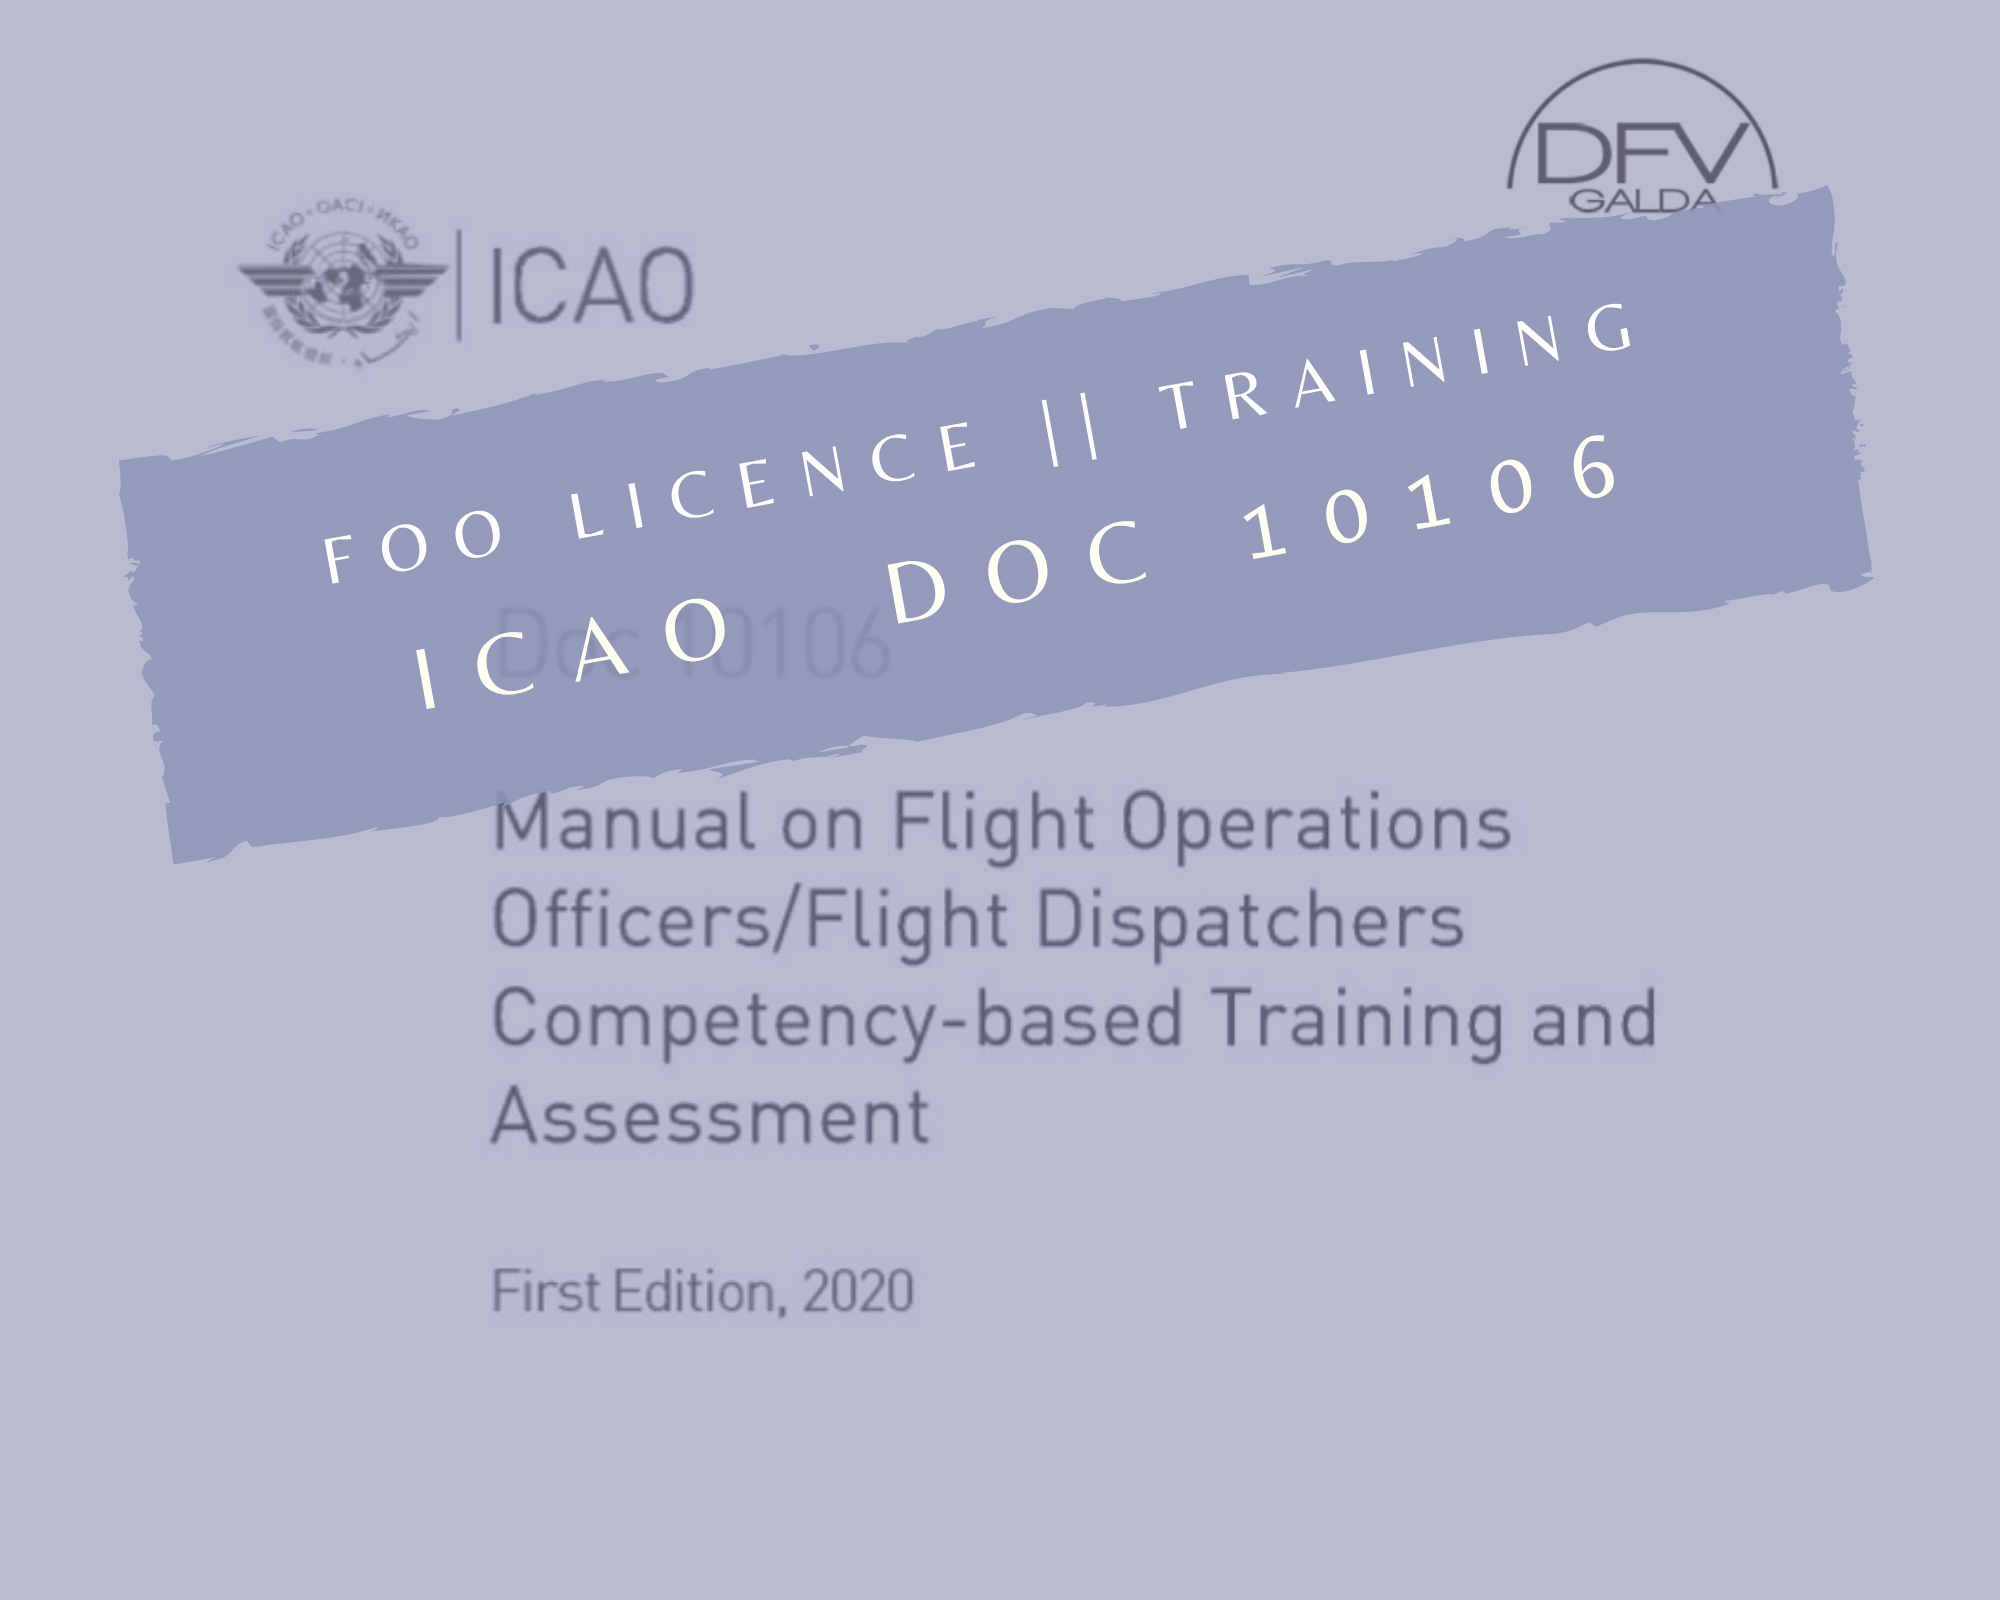 ICAO DOC 10106